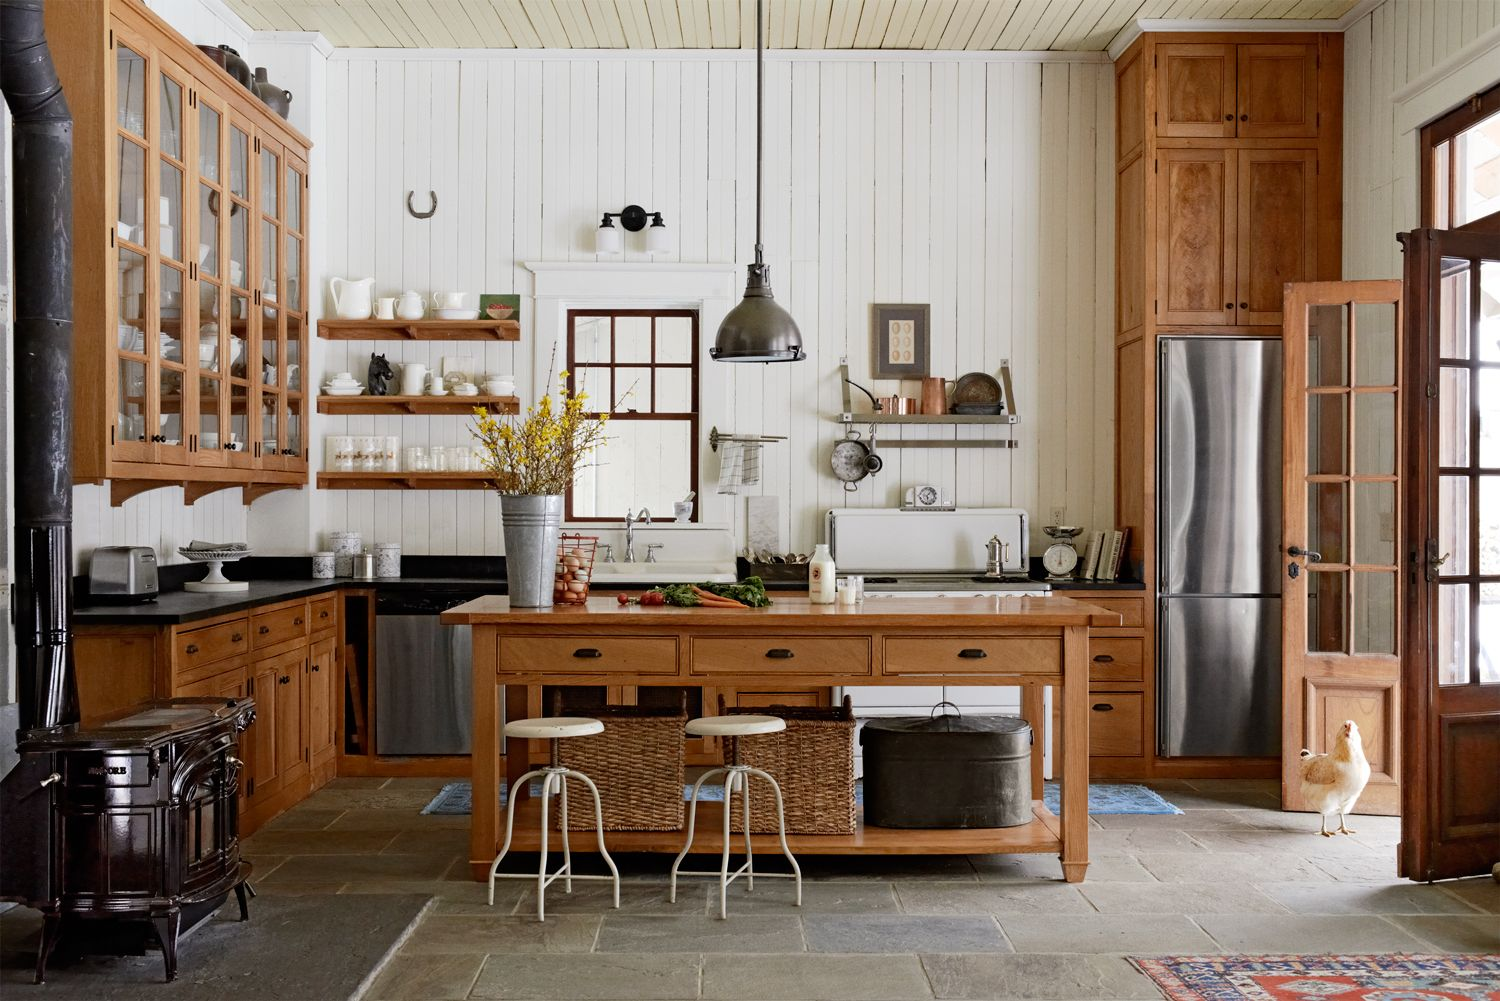 8 ways to add authentic farmhouse style to your kitchen jeff and rh countryliving com